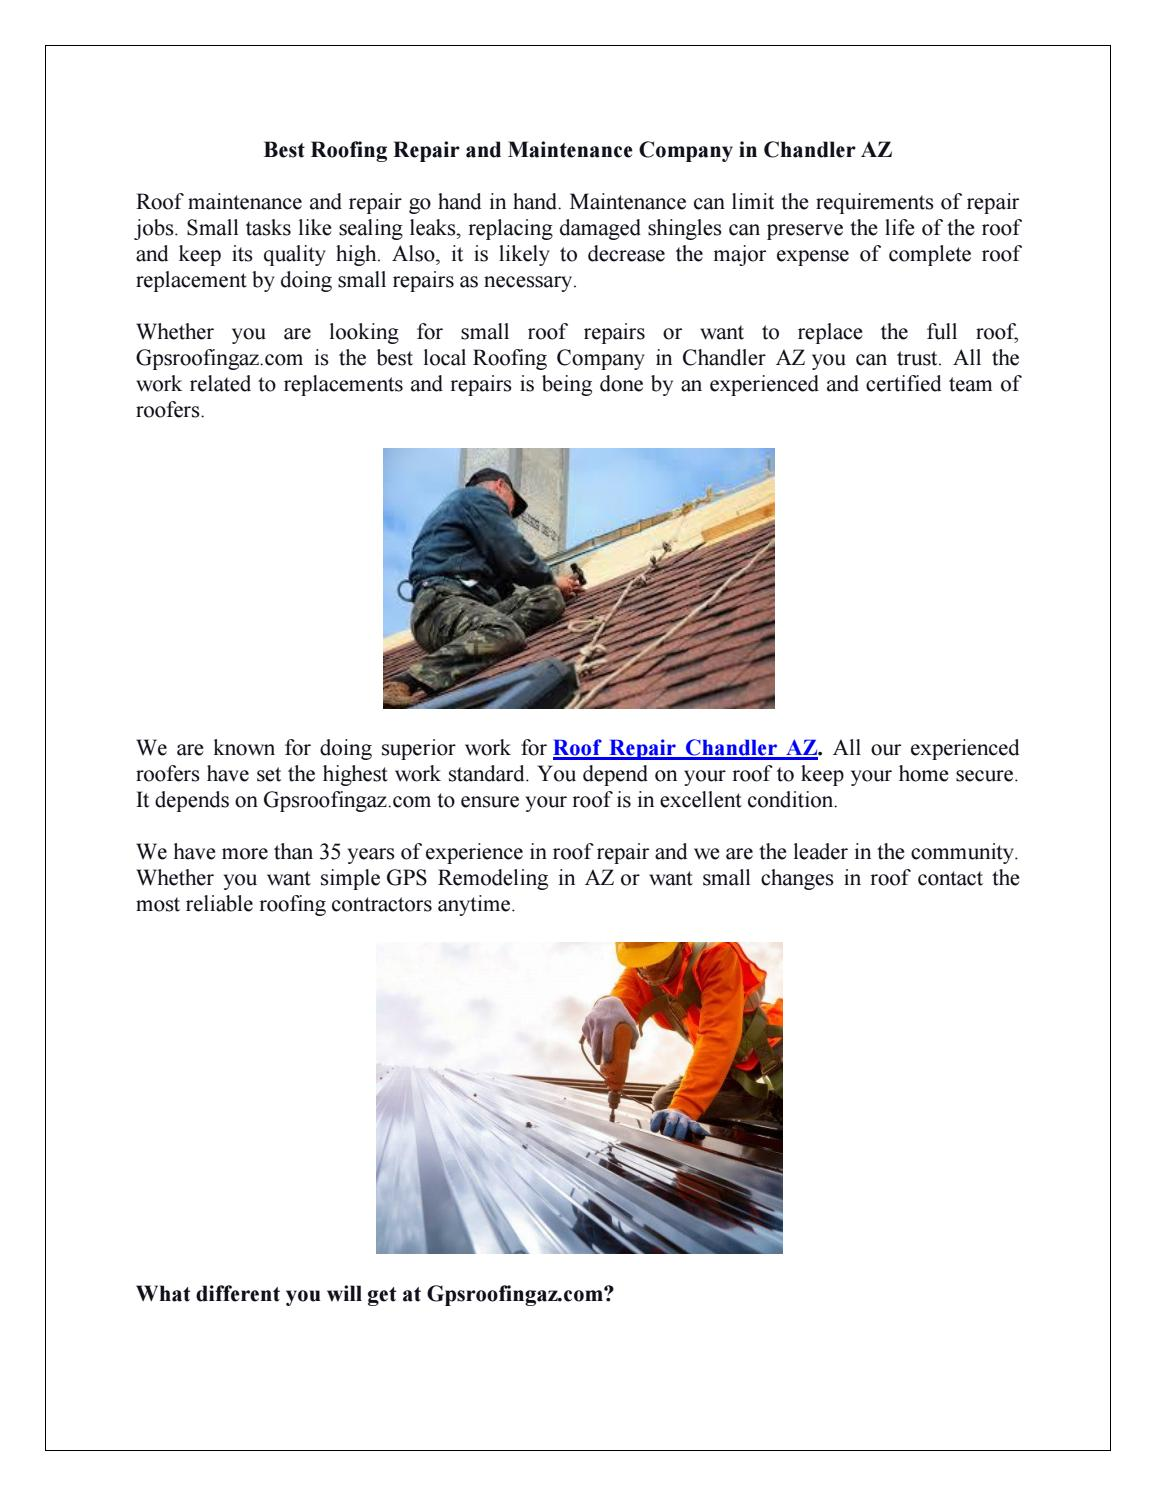 Gps Remodeling In Az By Gps Remodeling Issuu